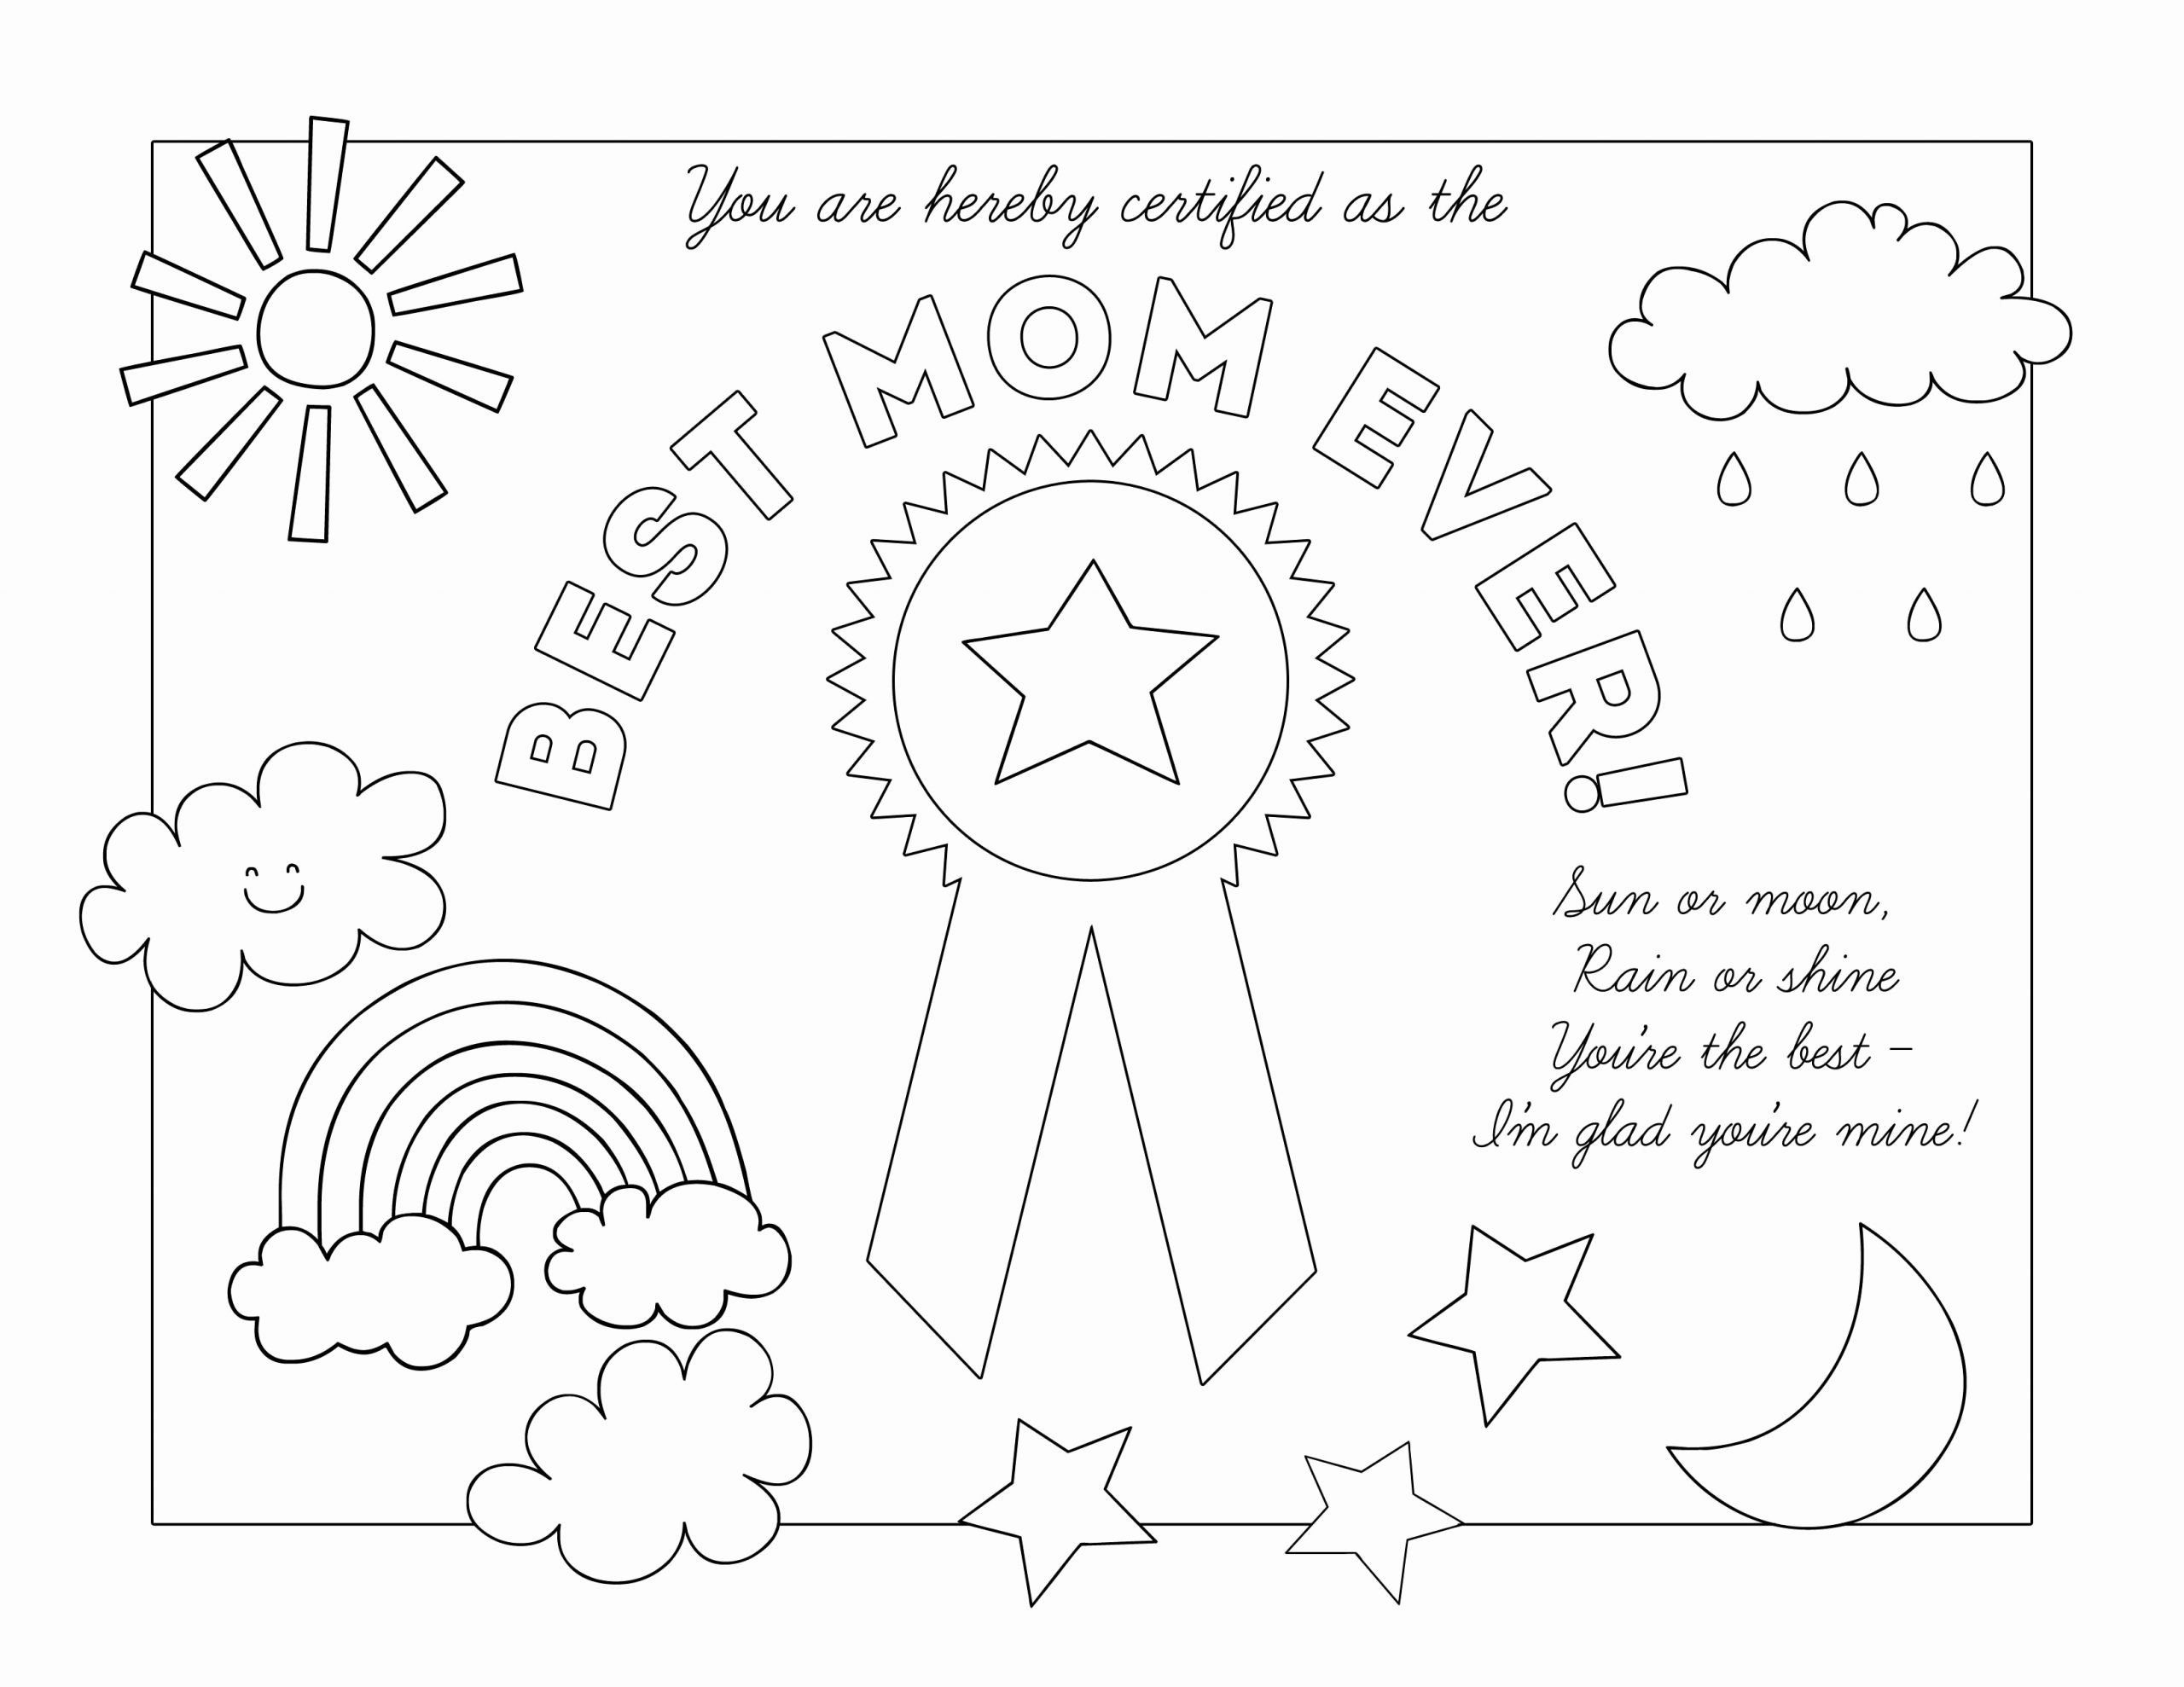 Best Mom Award Coloring Page (Page 1) - Line.17QQ.com